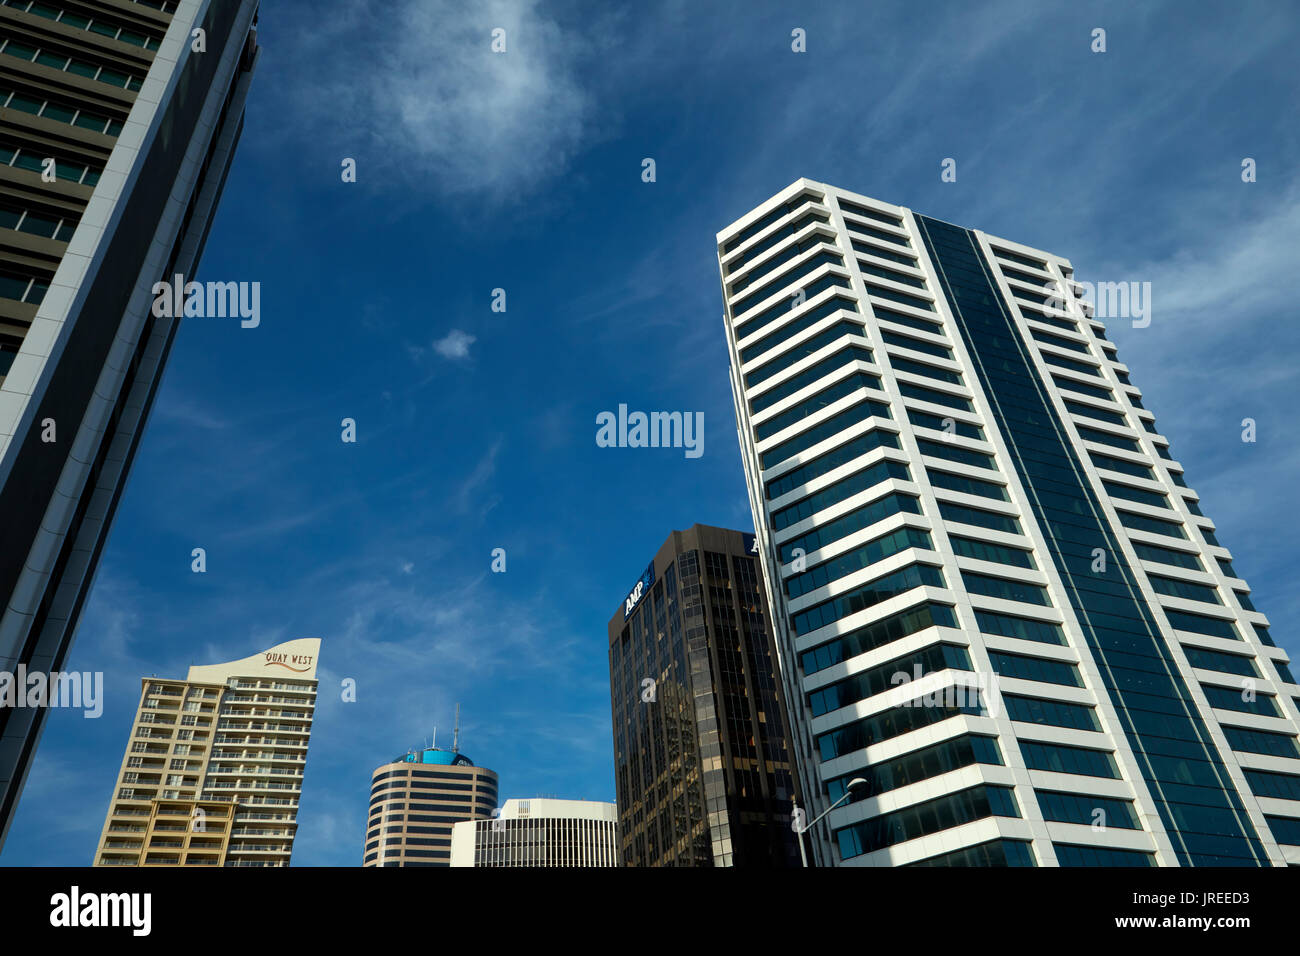 High-rise office buildings, Auckland, North Island, New Zealand - Stock Image